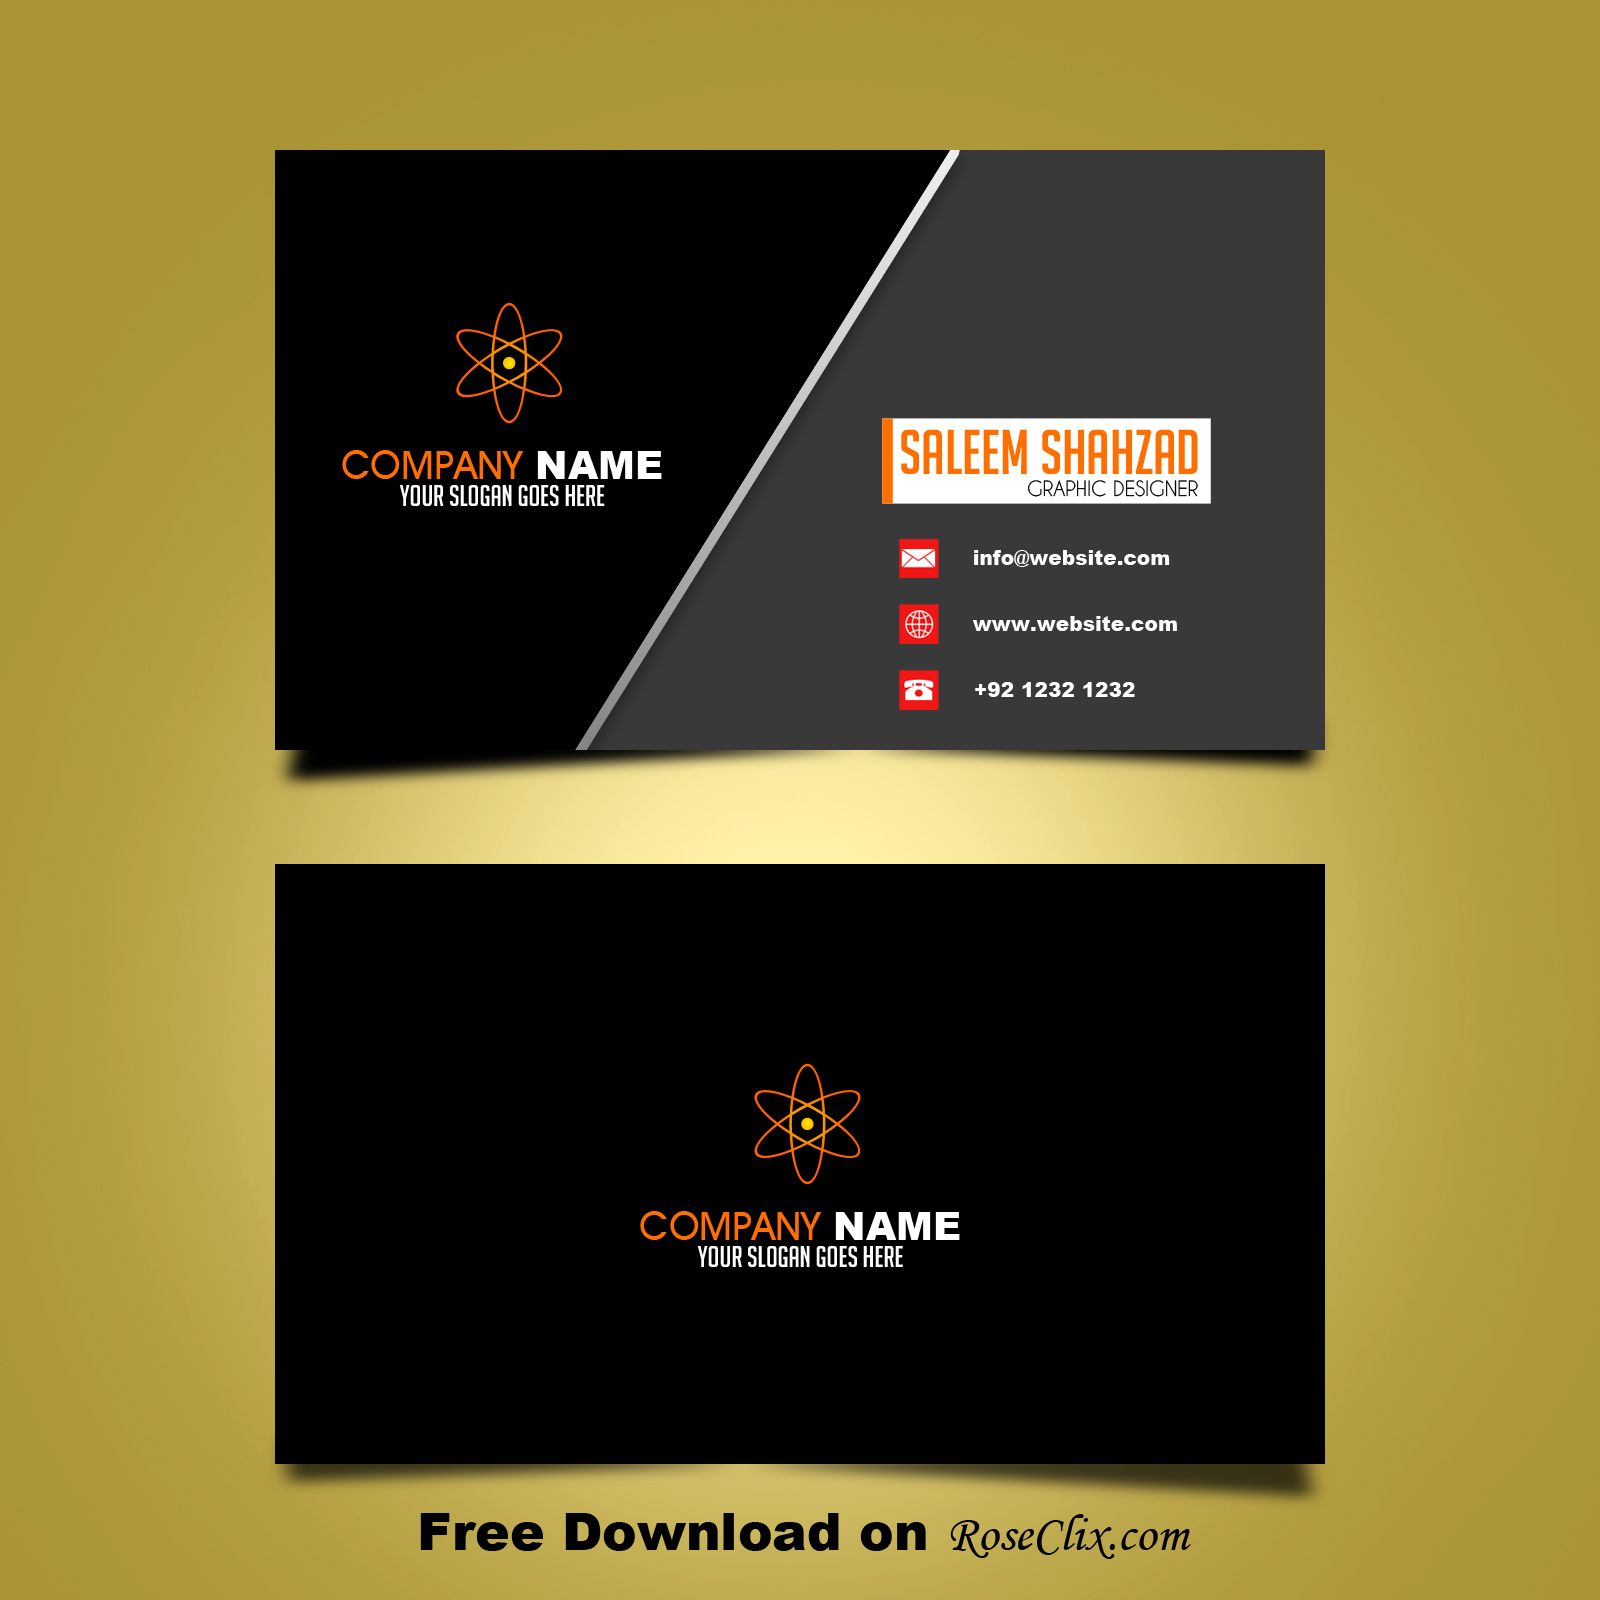 Free business card design template vector shapes psd business card free business card design template vector shapes psd cheaphphosting Images